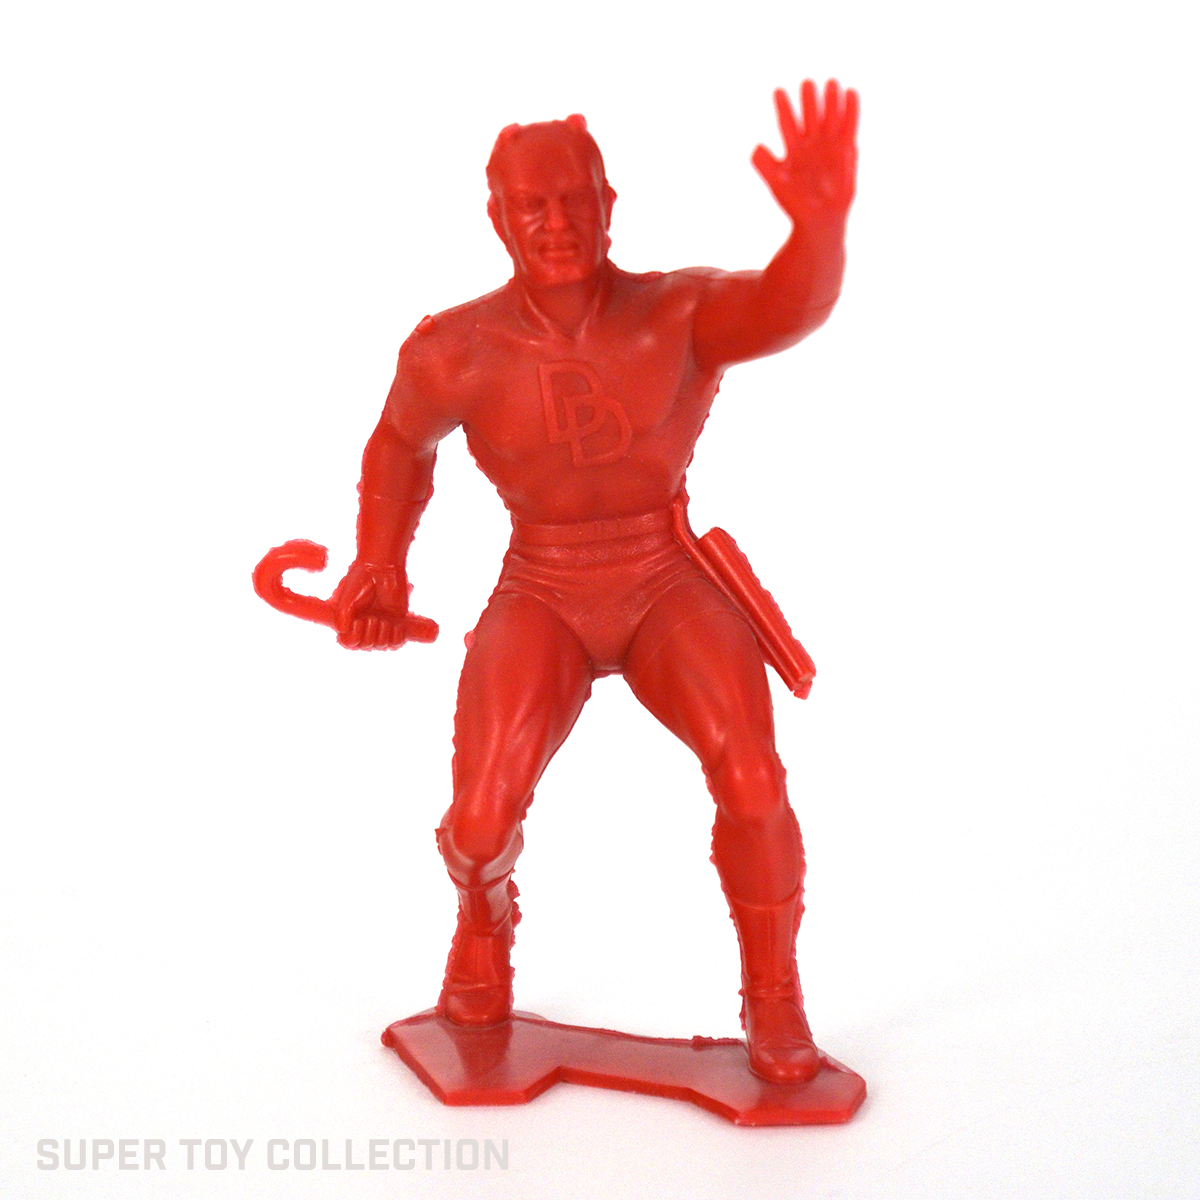 Daredevil Figure by Marx, 1967